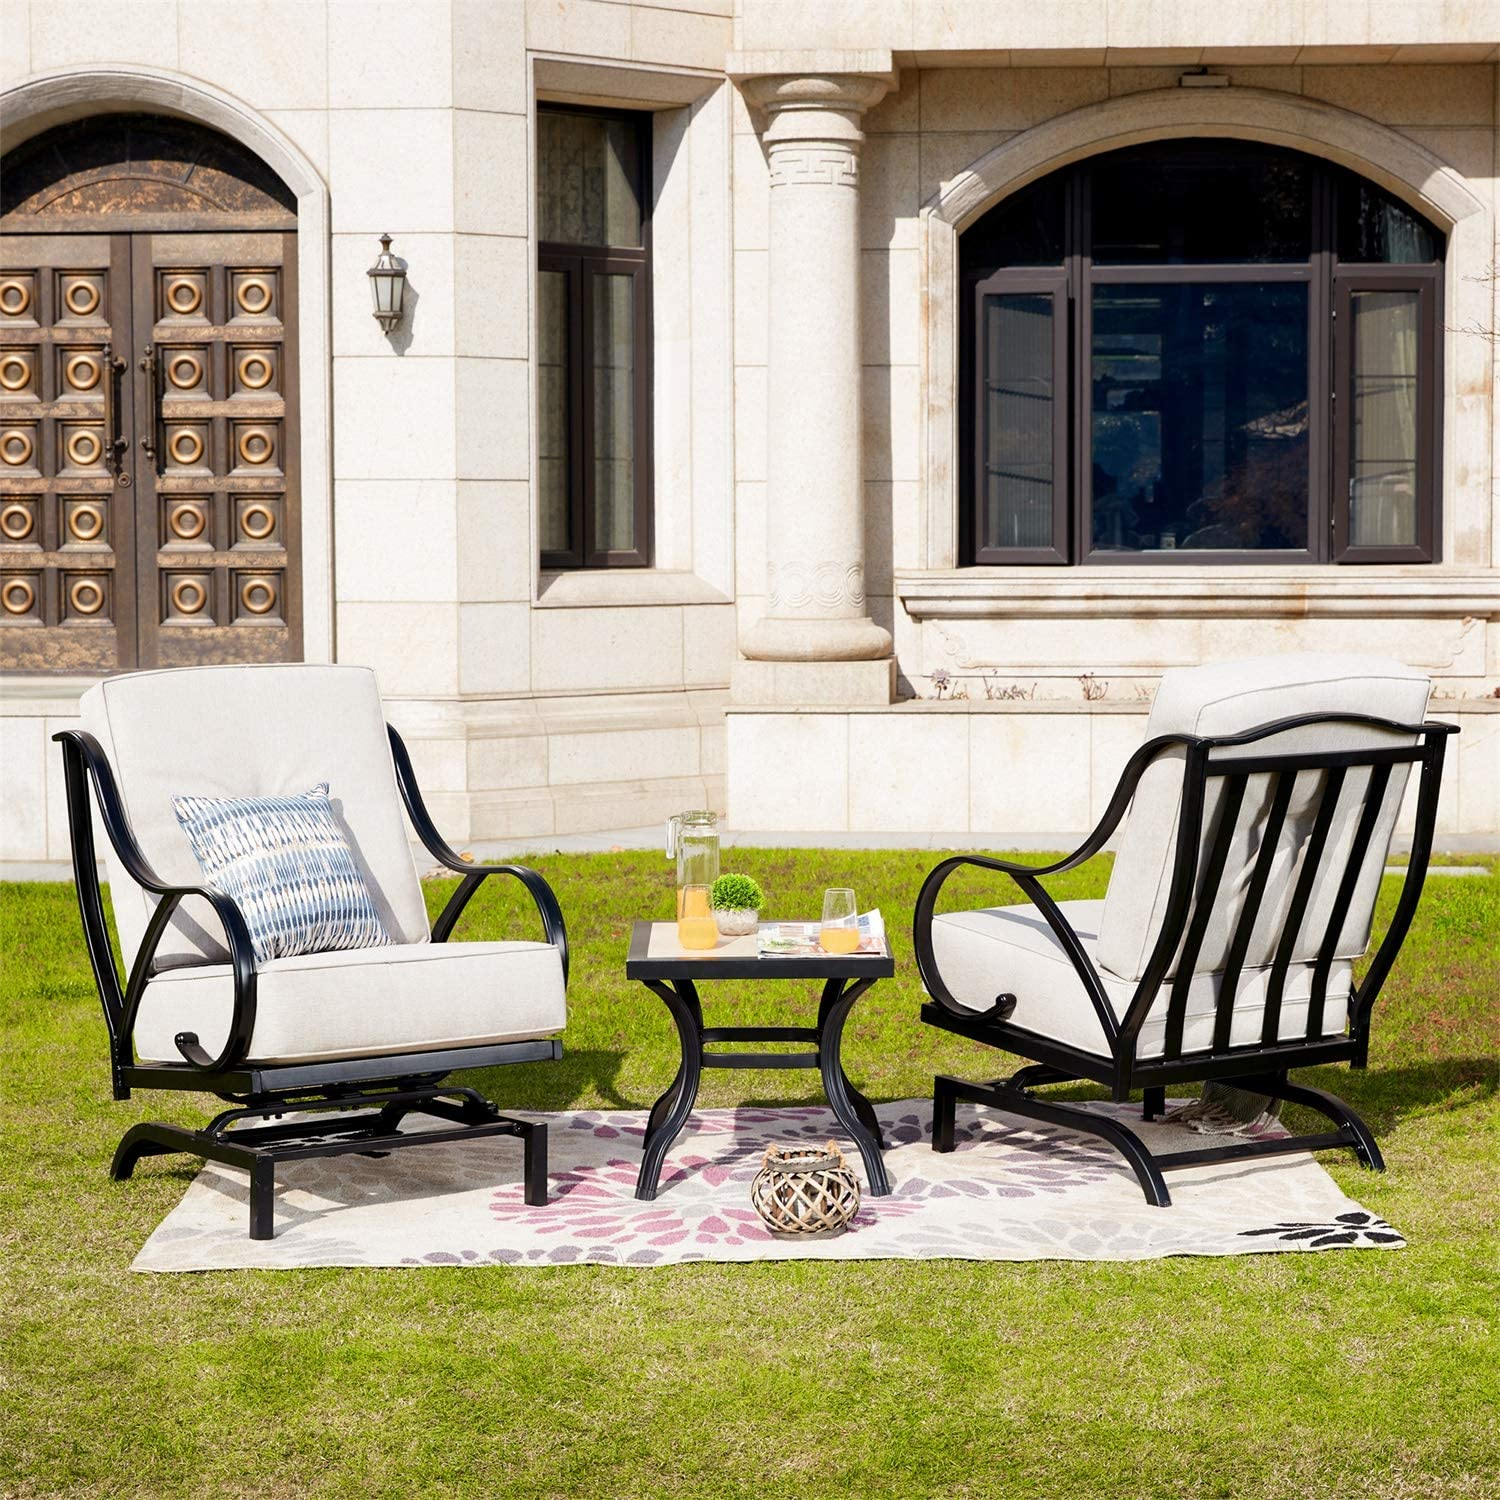 PatioFestival Patio Bistro Set Outdoor Rocking Motion Chairs with Thick Cushions /& Coffee Table Conversation Sets Metal Furniture for Lawn Garden Poolside Yard